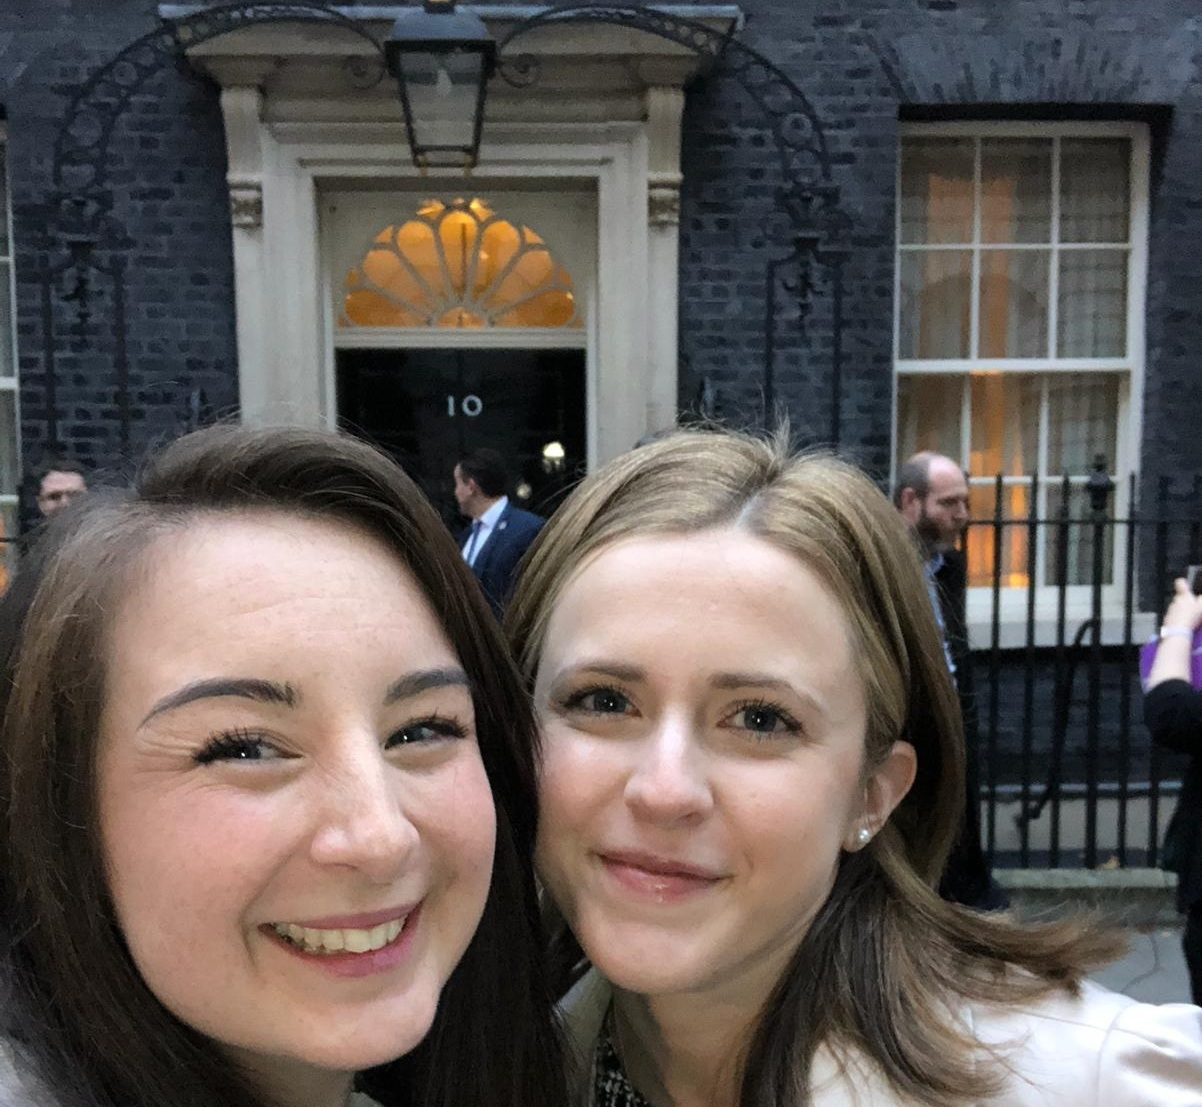 faye+and+laura+bearhugs+gifts+at+downing+street+disability+inclusion.jpg